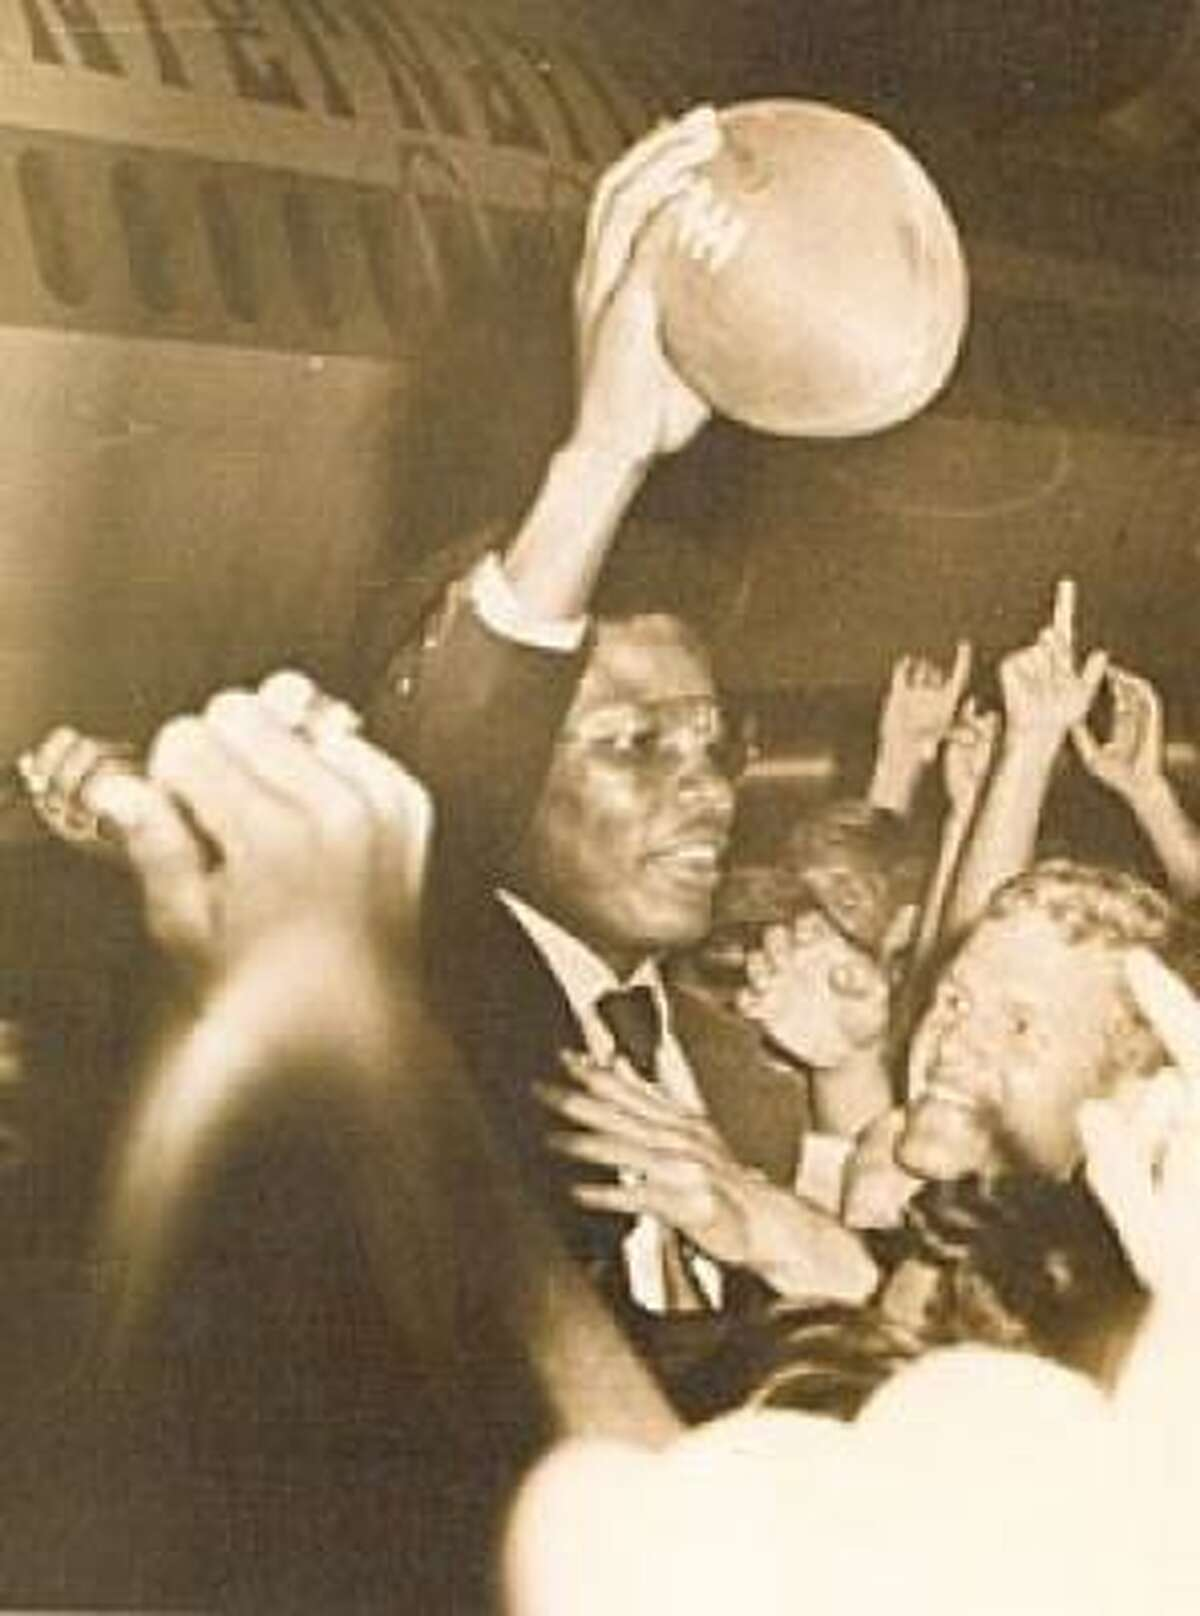 Hugh McElroy is greeted by fans at Easterwood Airport after helping Texas A&M defeat LSU 20-18 in 1970 with a late touchdown catch.